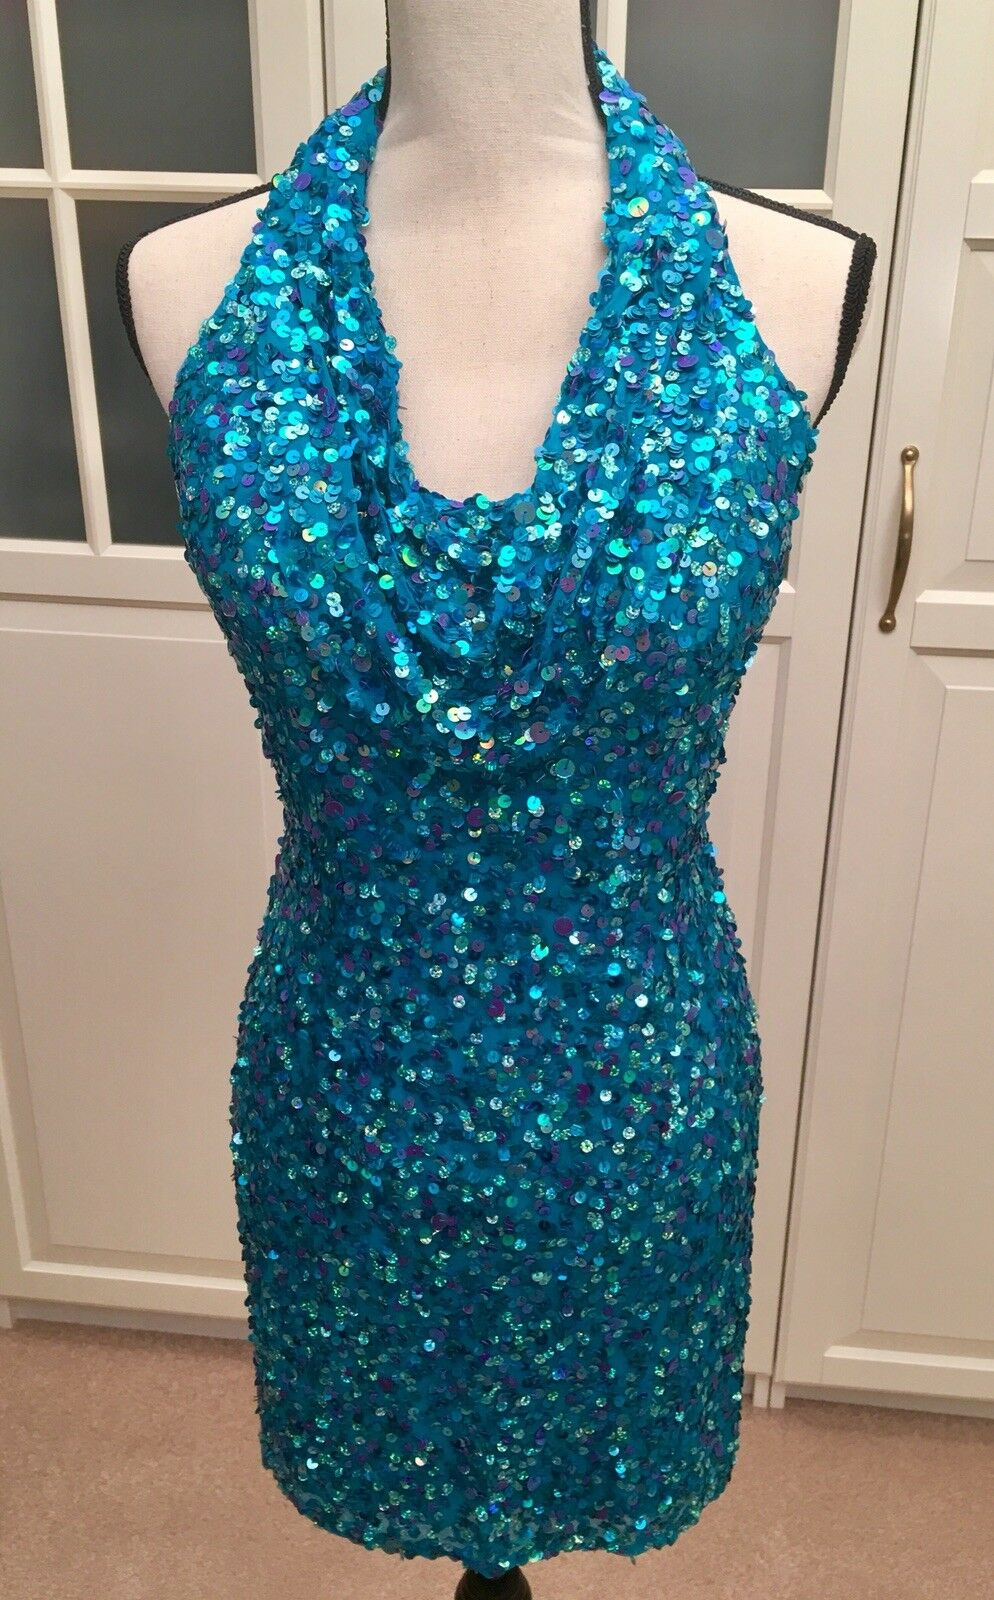 SEAN COUTURE- Sexy Teal Sequin Halter Dress - Prom formal - Size 2